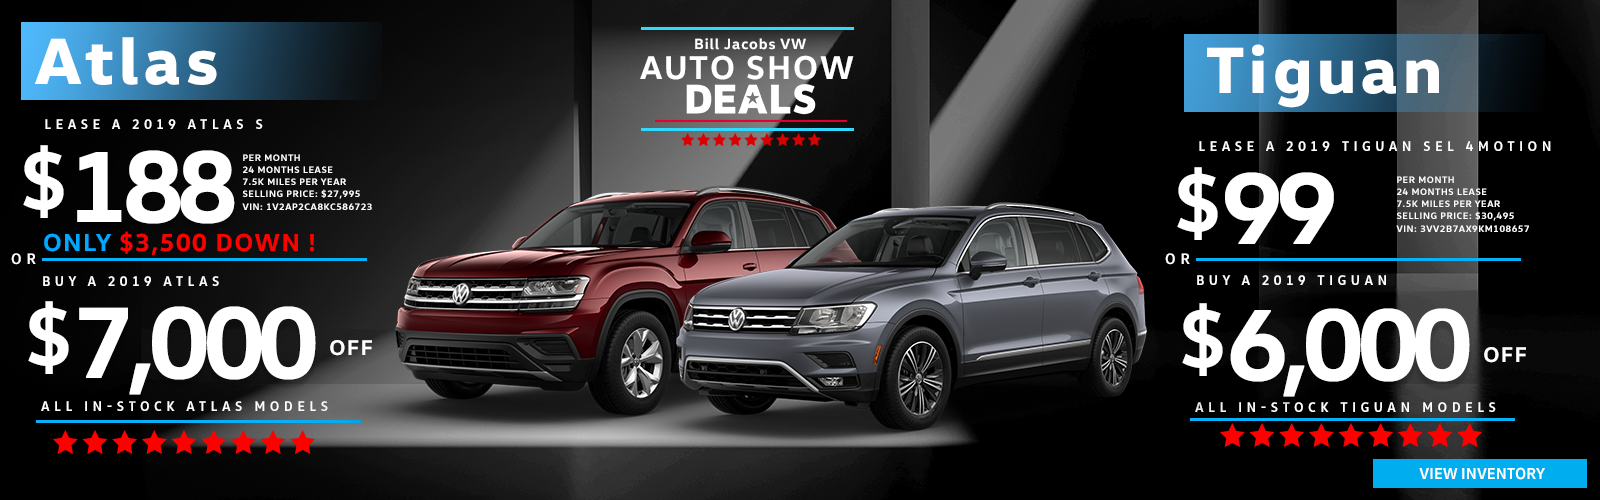 Lease & Finance Auto Show Specials on Atlas and Tiguan